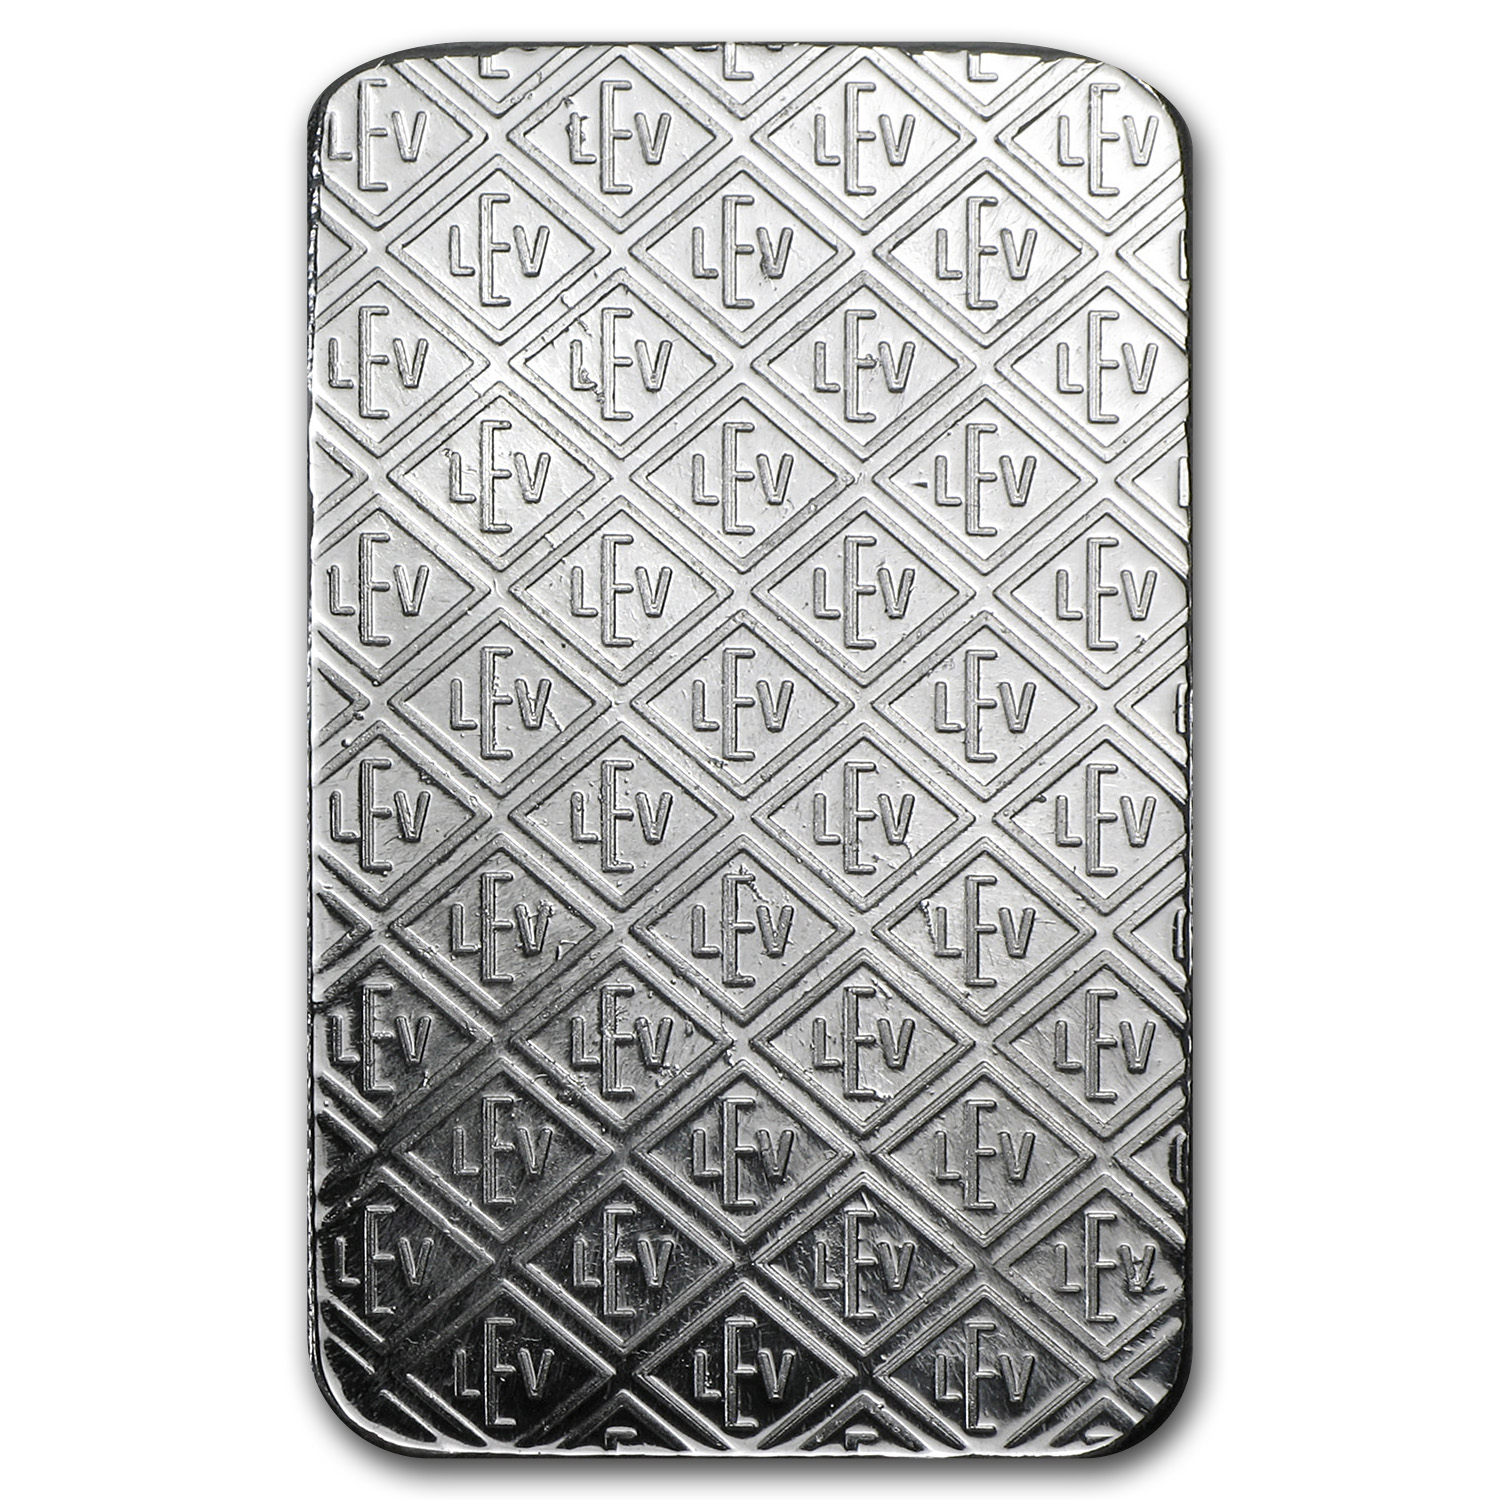 100 gram Silver Bars - Geiger (Security Line Series)